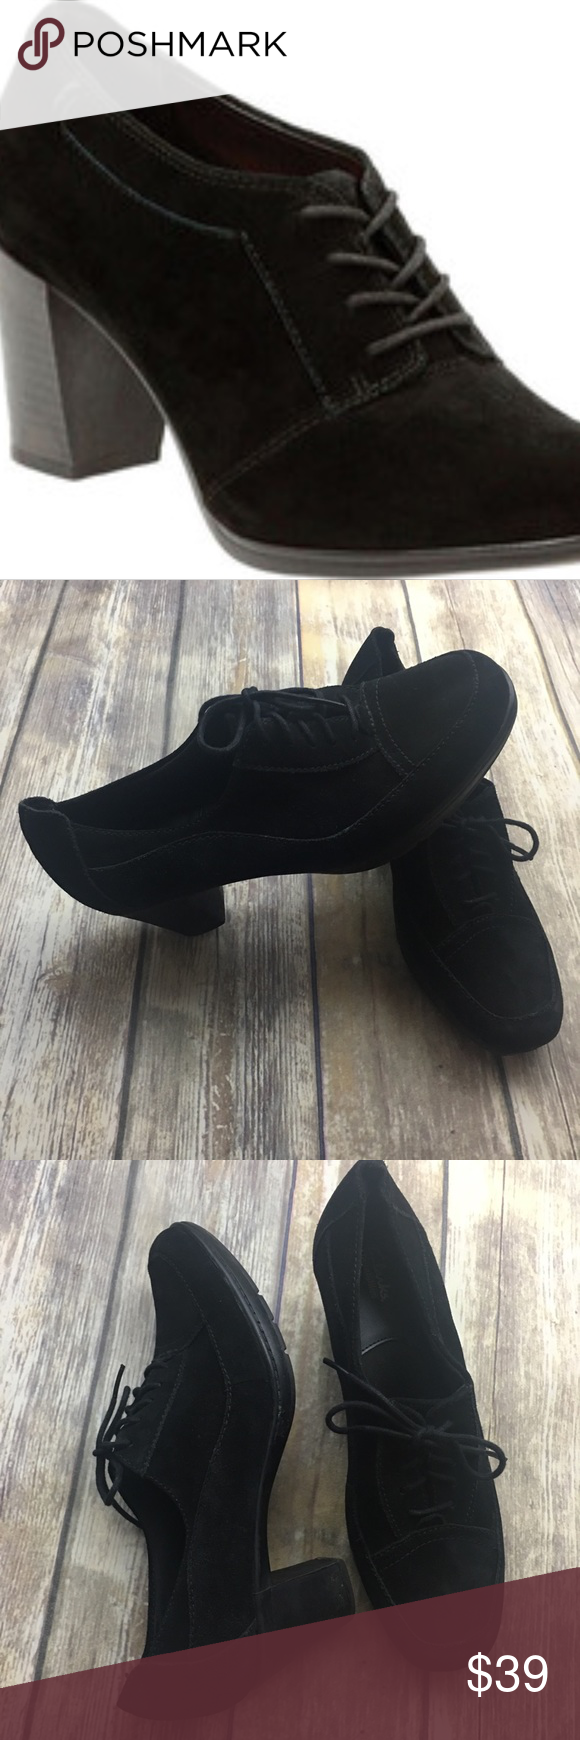 66ef5e0b505b4 Clarks Black Suede Araya Hale Lace Up Pumps Black suede lace up pumps. In  excellent